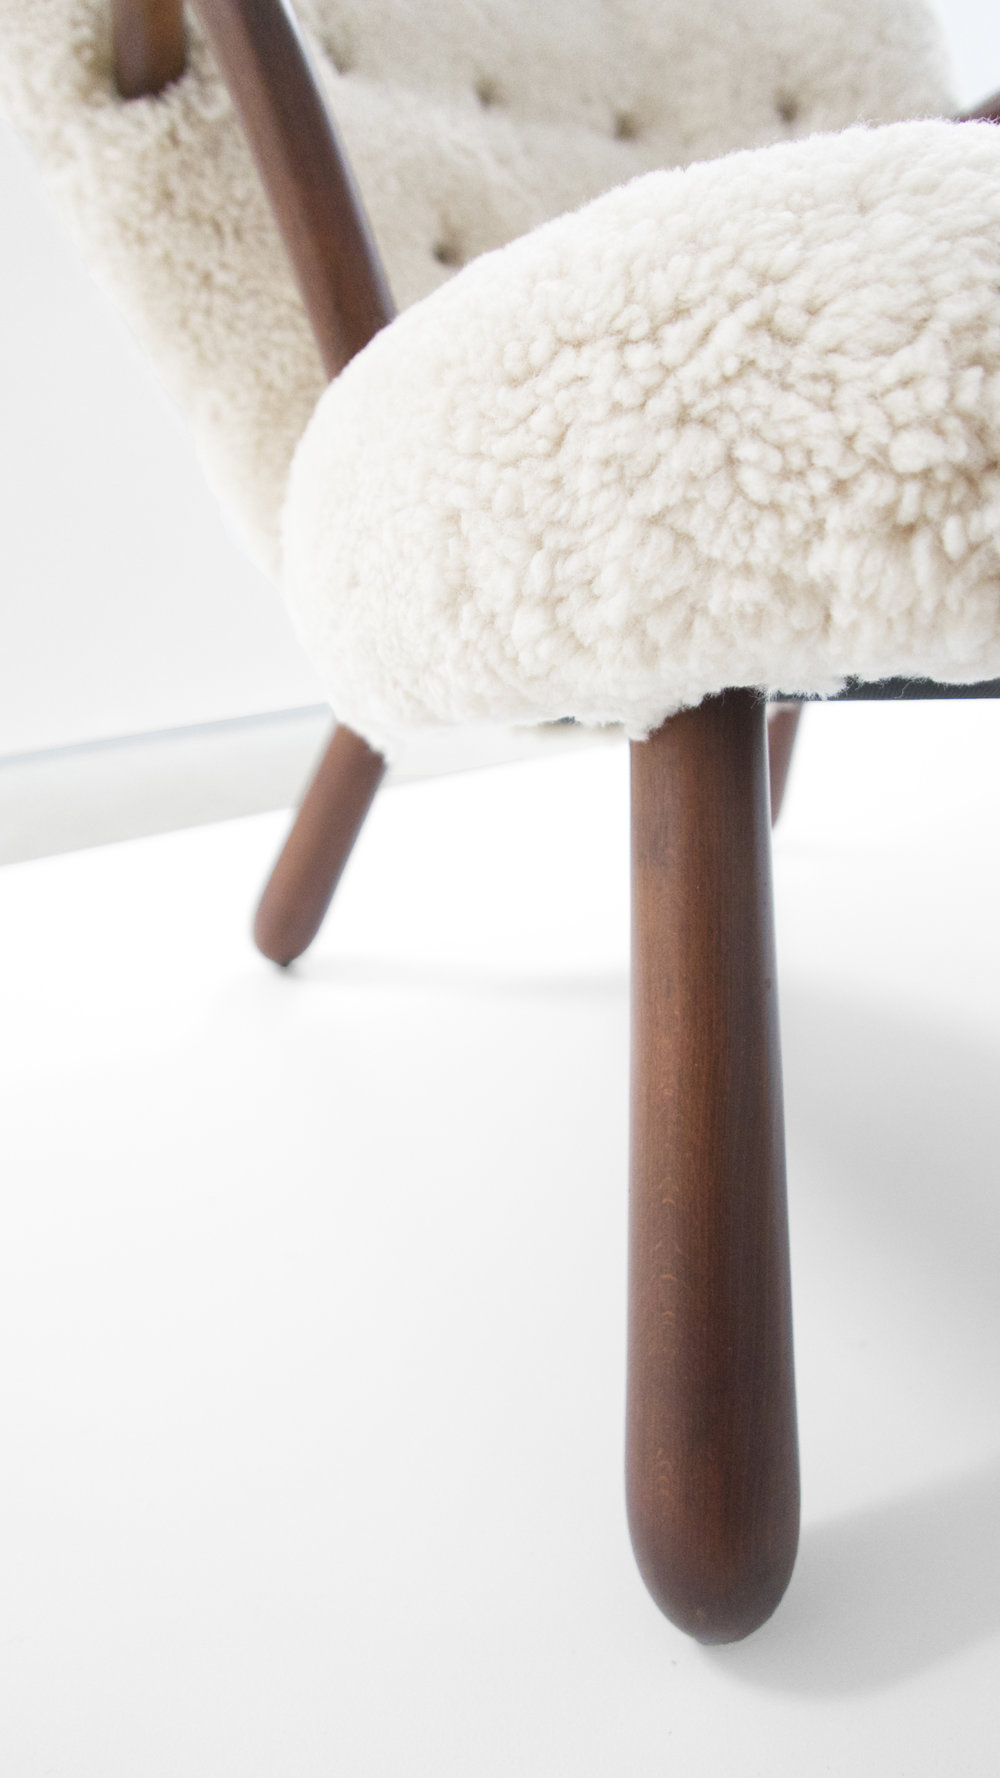 6. Philip Arctander, %22'Clam' Chair,%22 c. 1940s, birchm sheepskin, 32.5H x 26W x 32D inches.jpg